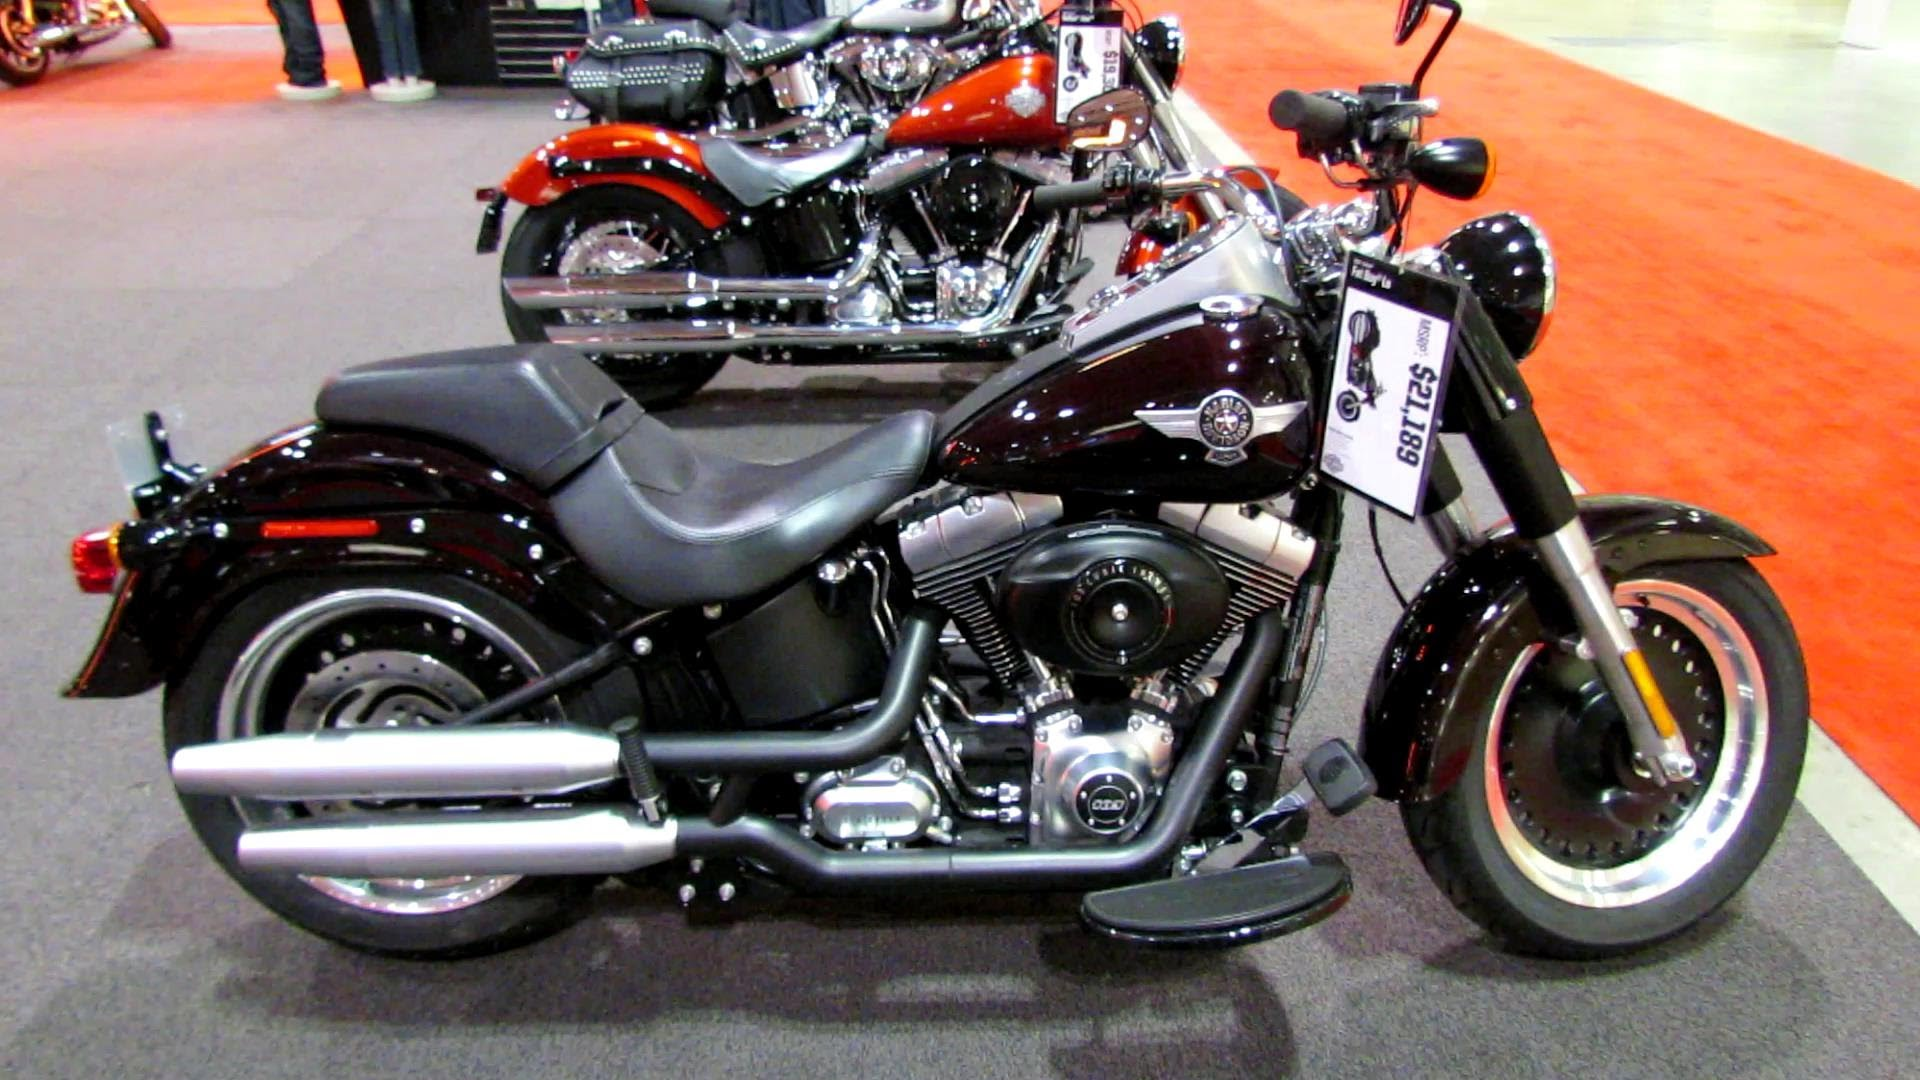 2014 Harley-Davidson Softail Fat Boy Lo #7